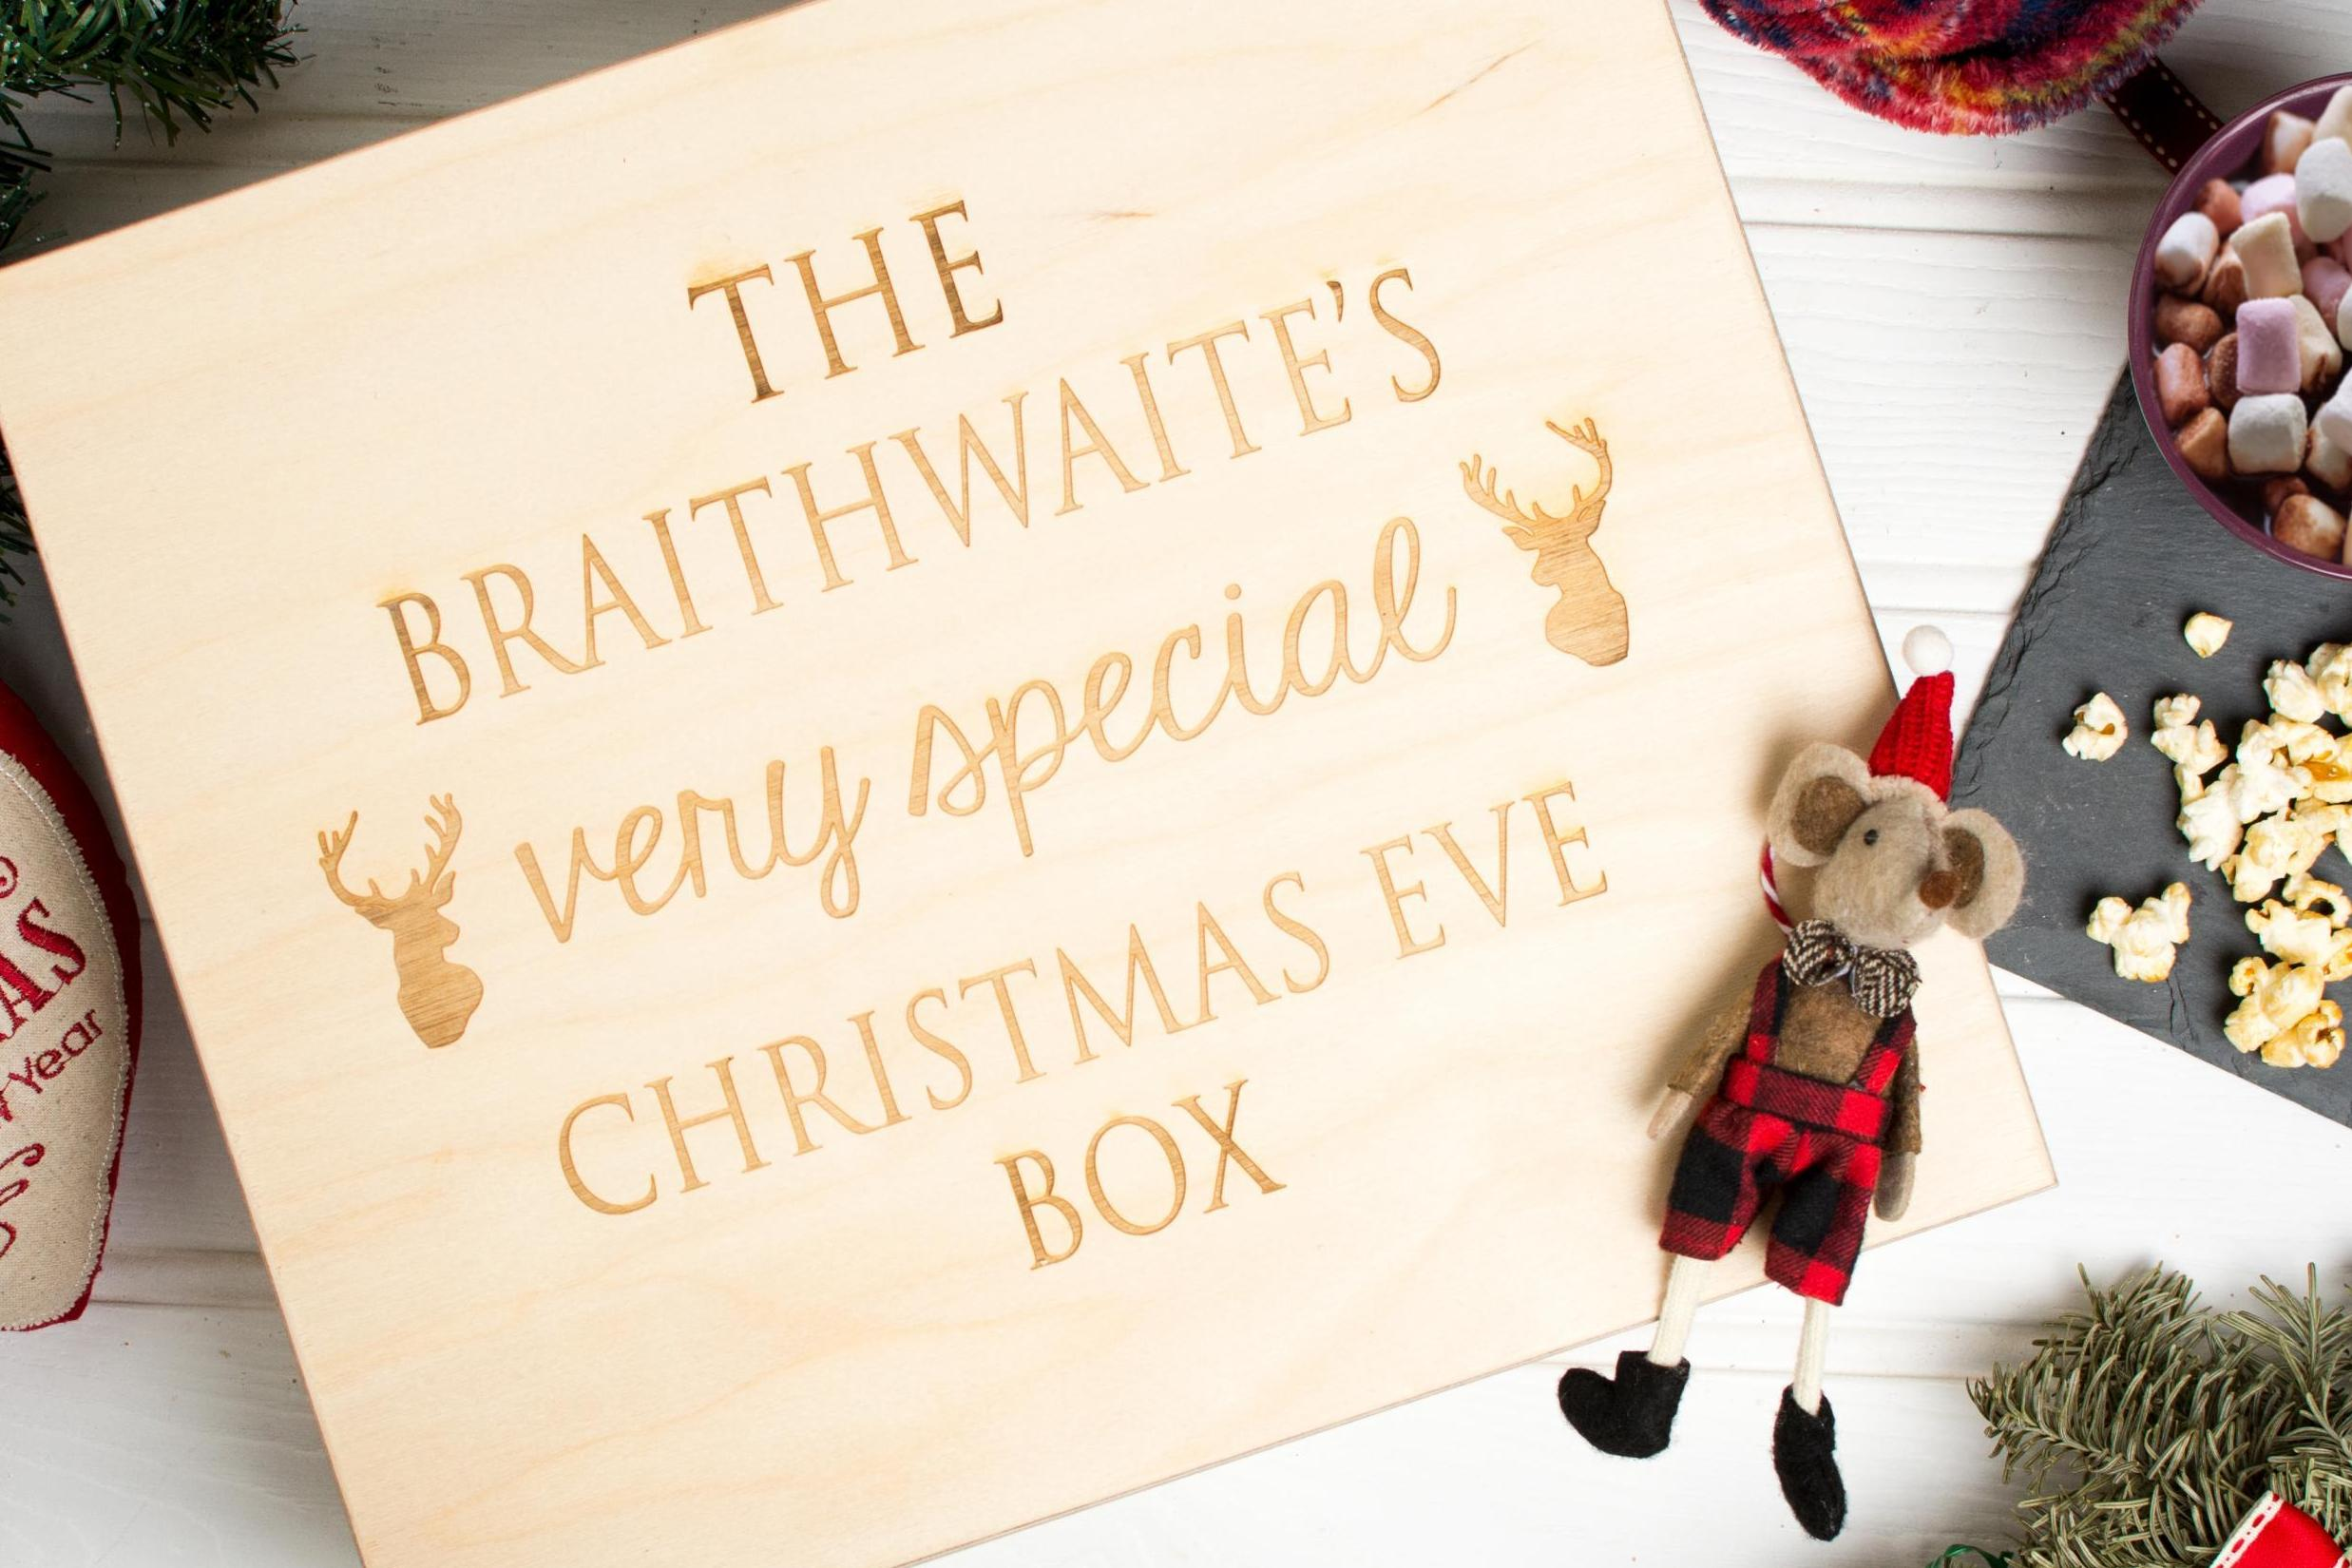 christmas eve boxes are the latest must have festive tradition 4